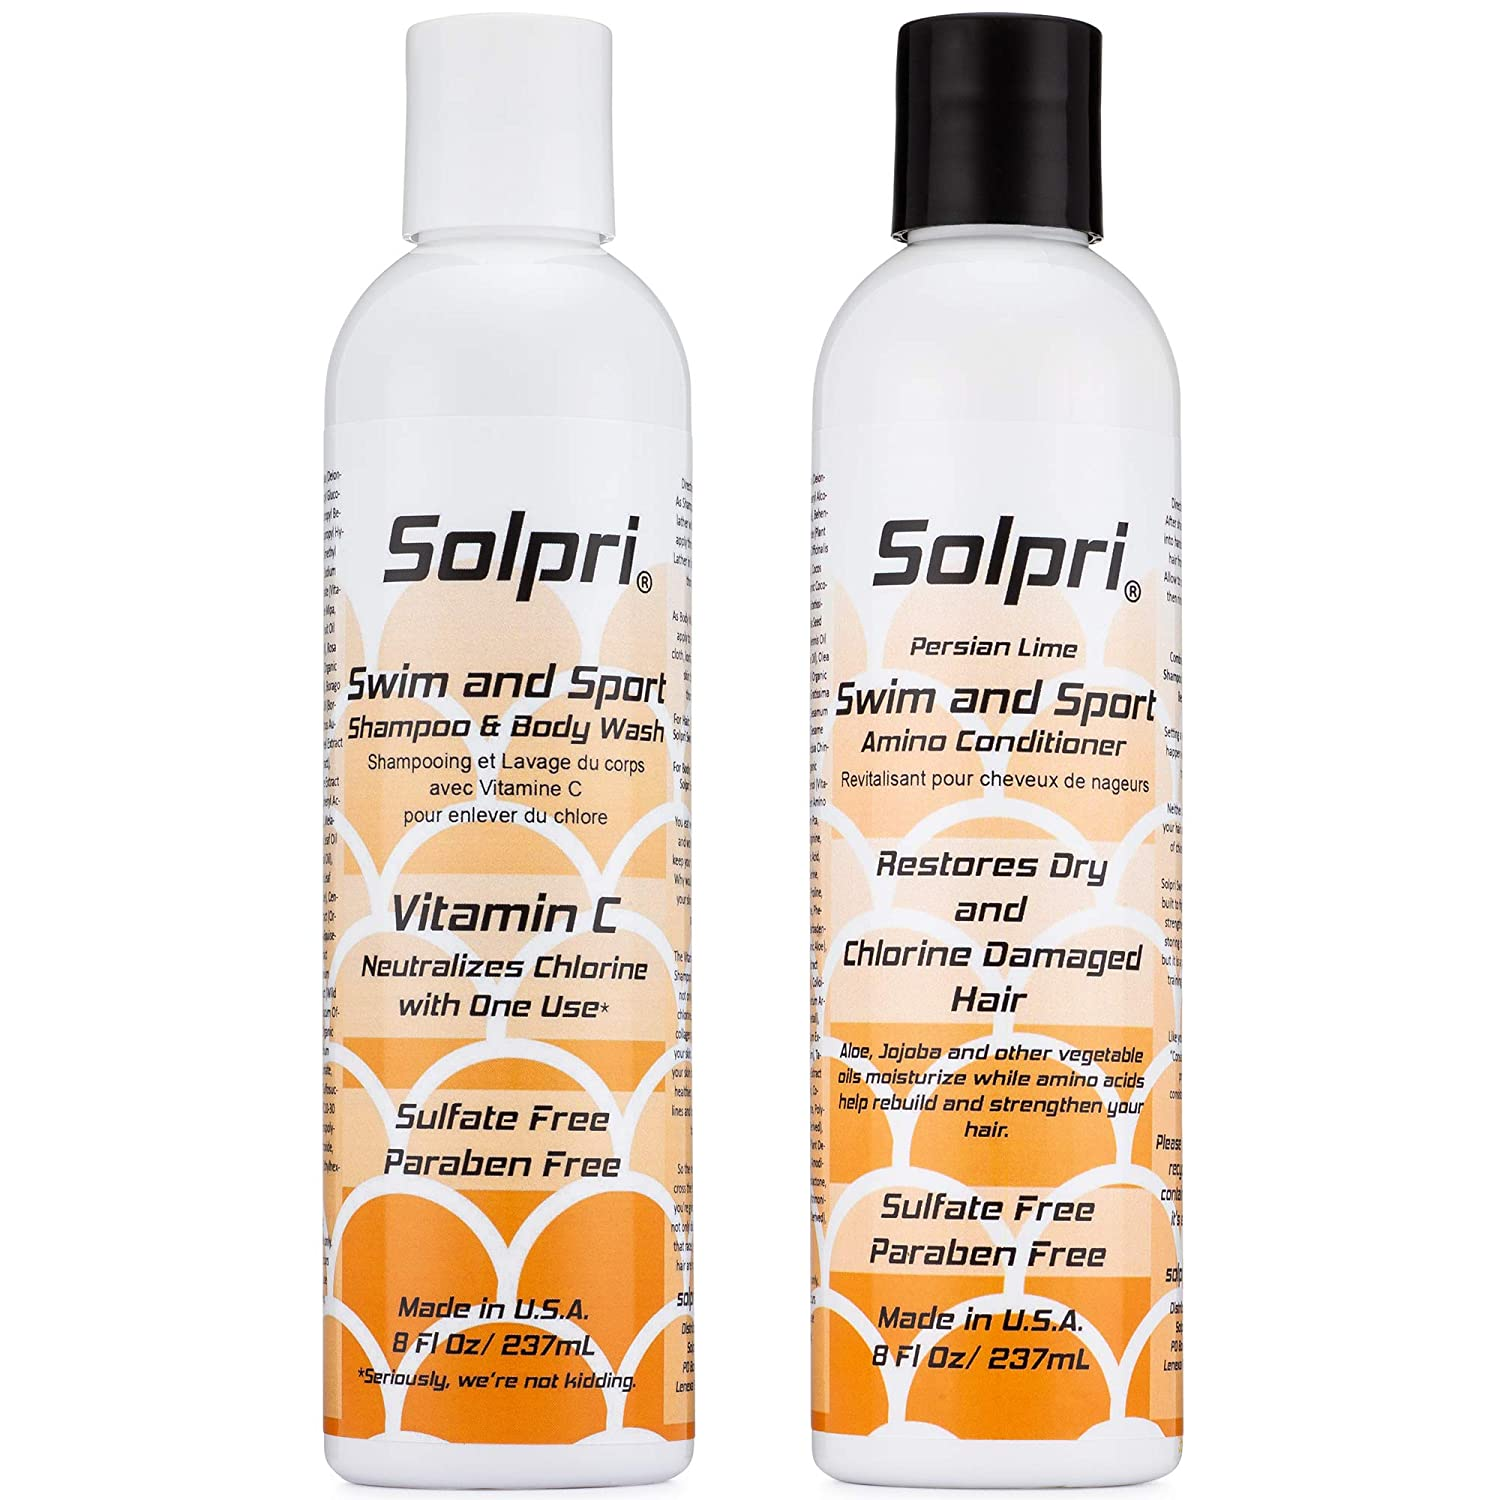 Solpri Swimmers Chlorine Swim Shampoo Body Wash and Conditioner with Vitamin C